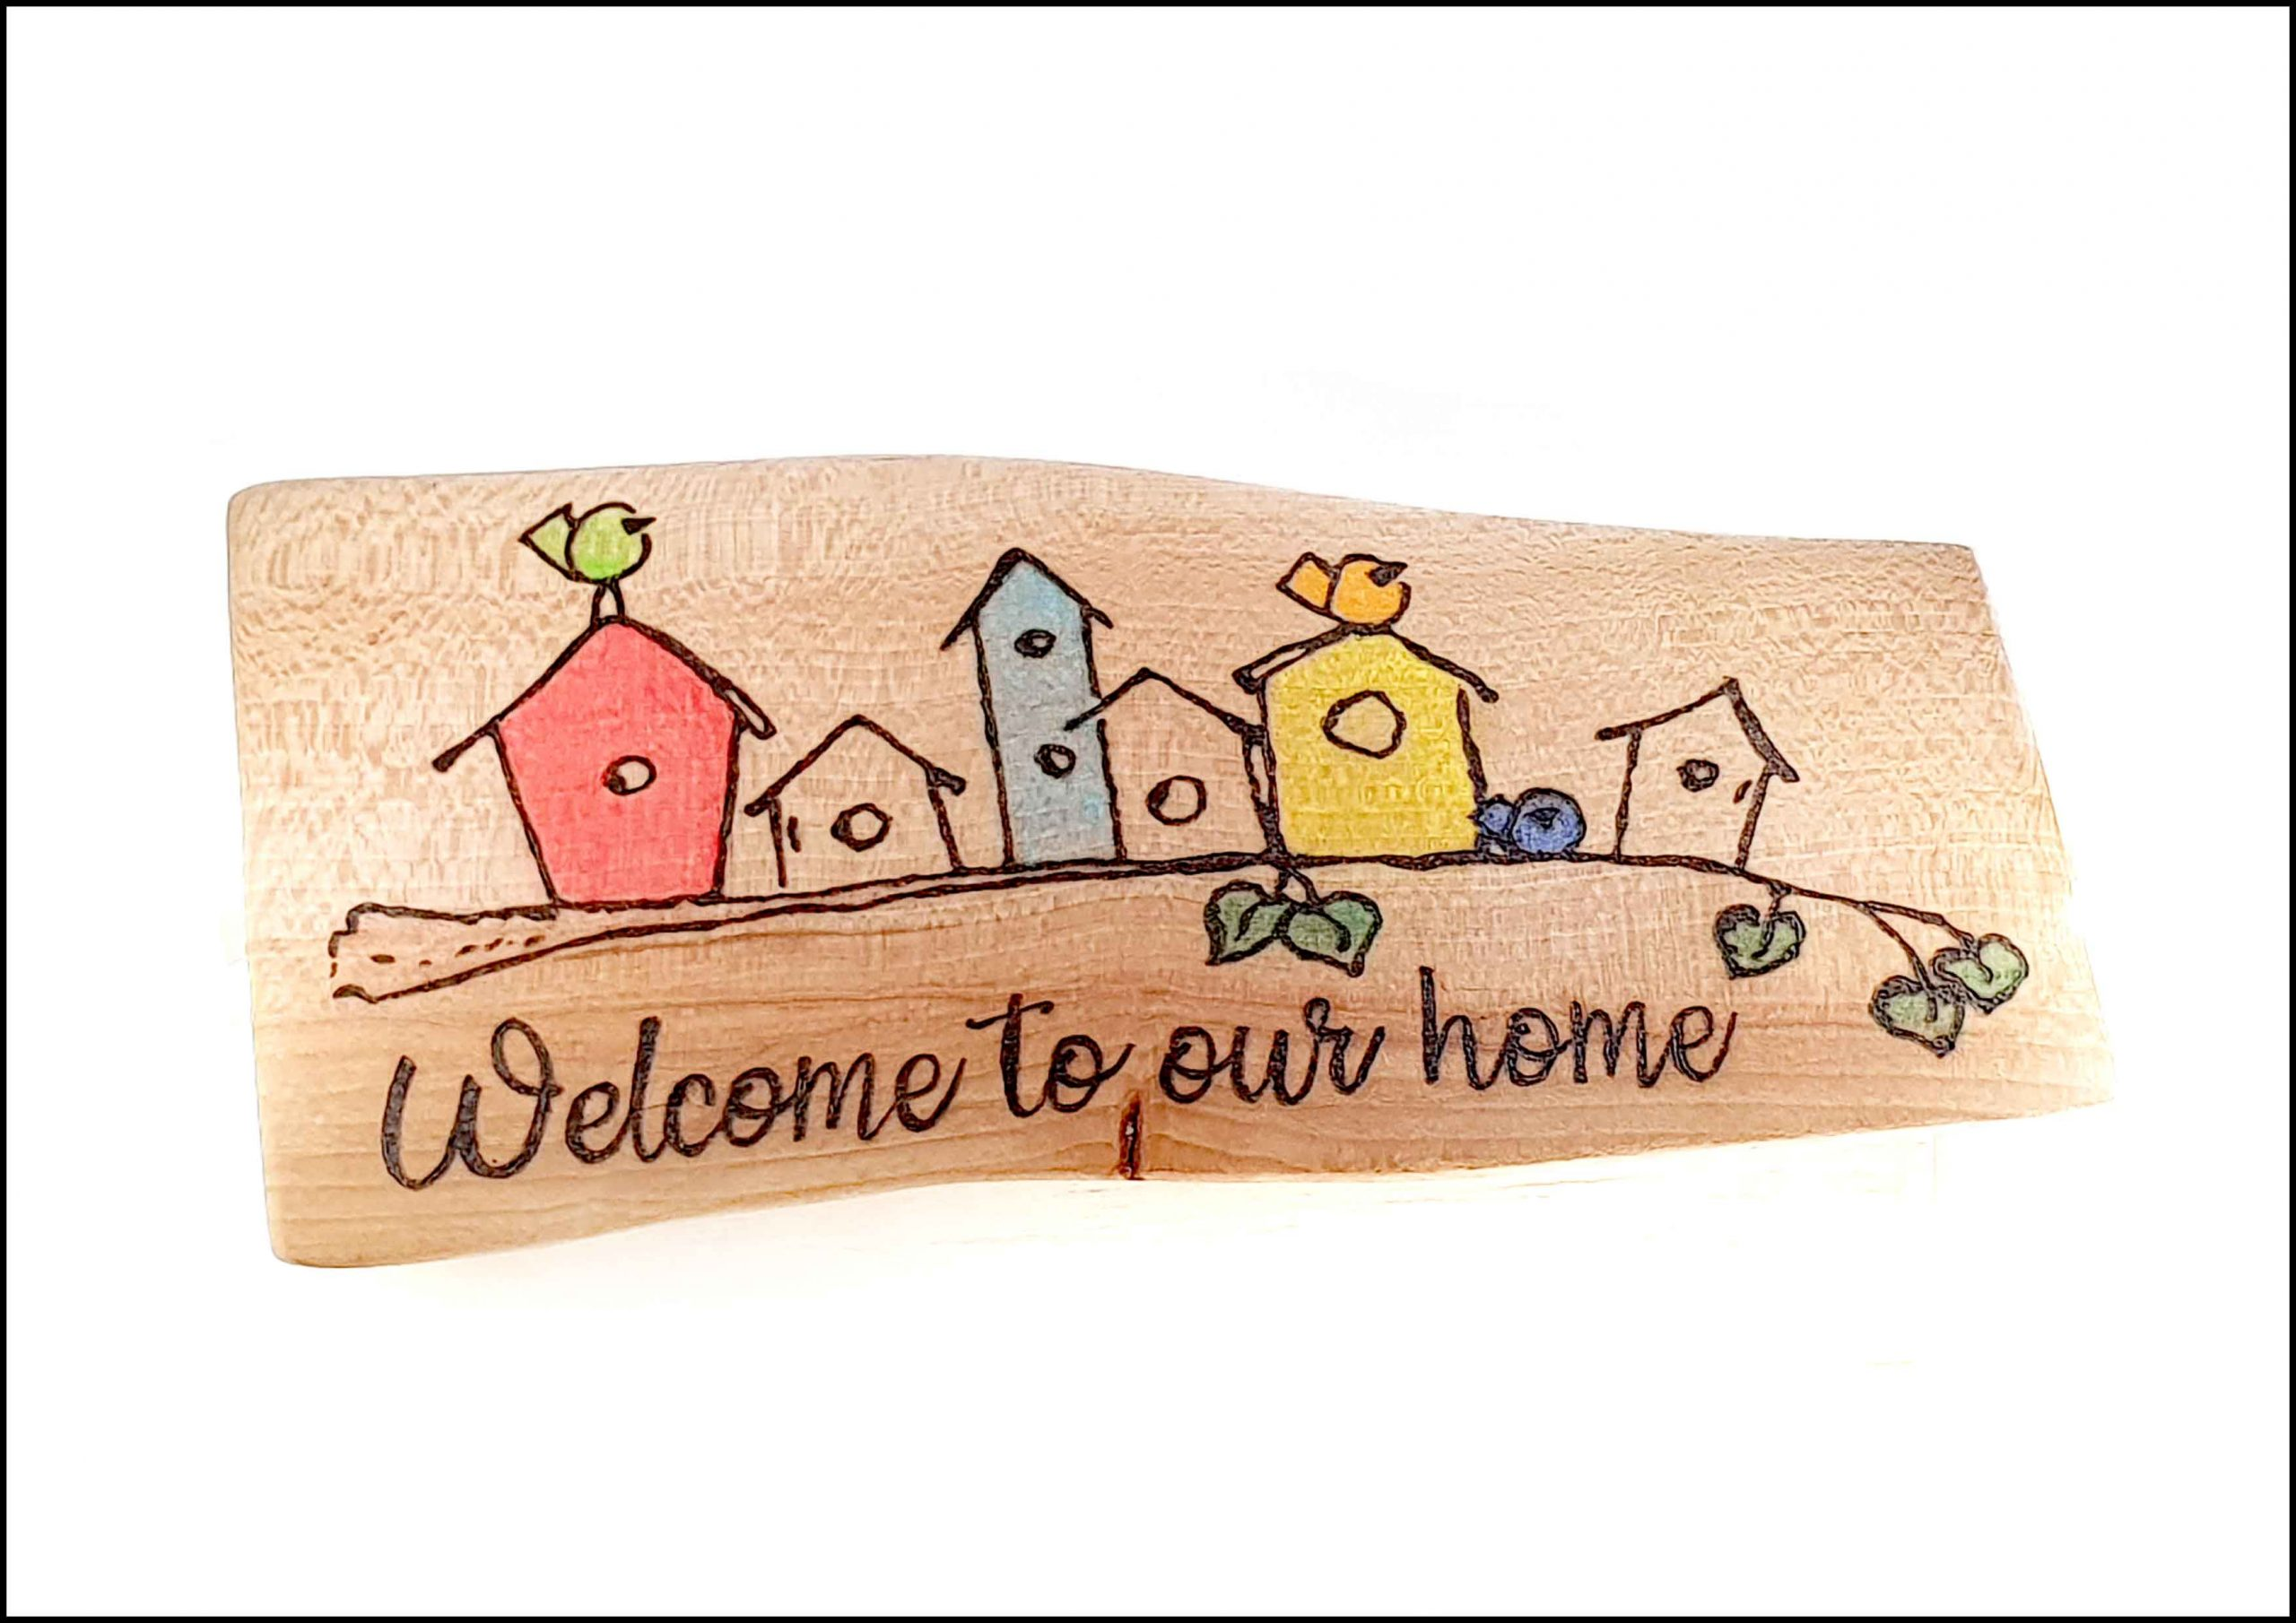 Welcome to our home Image